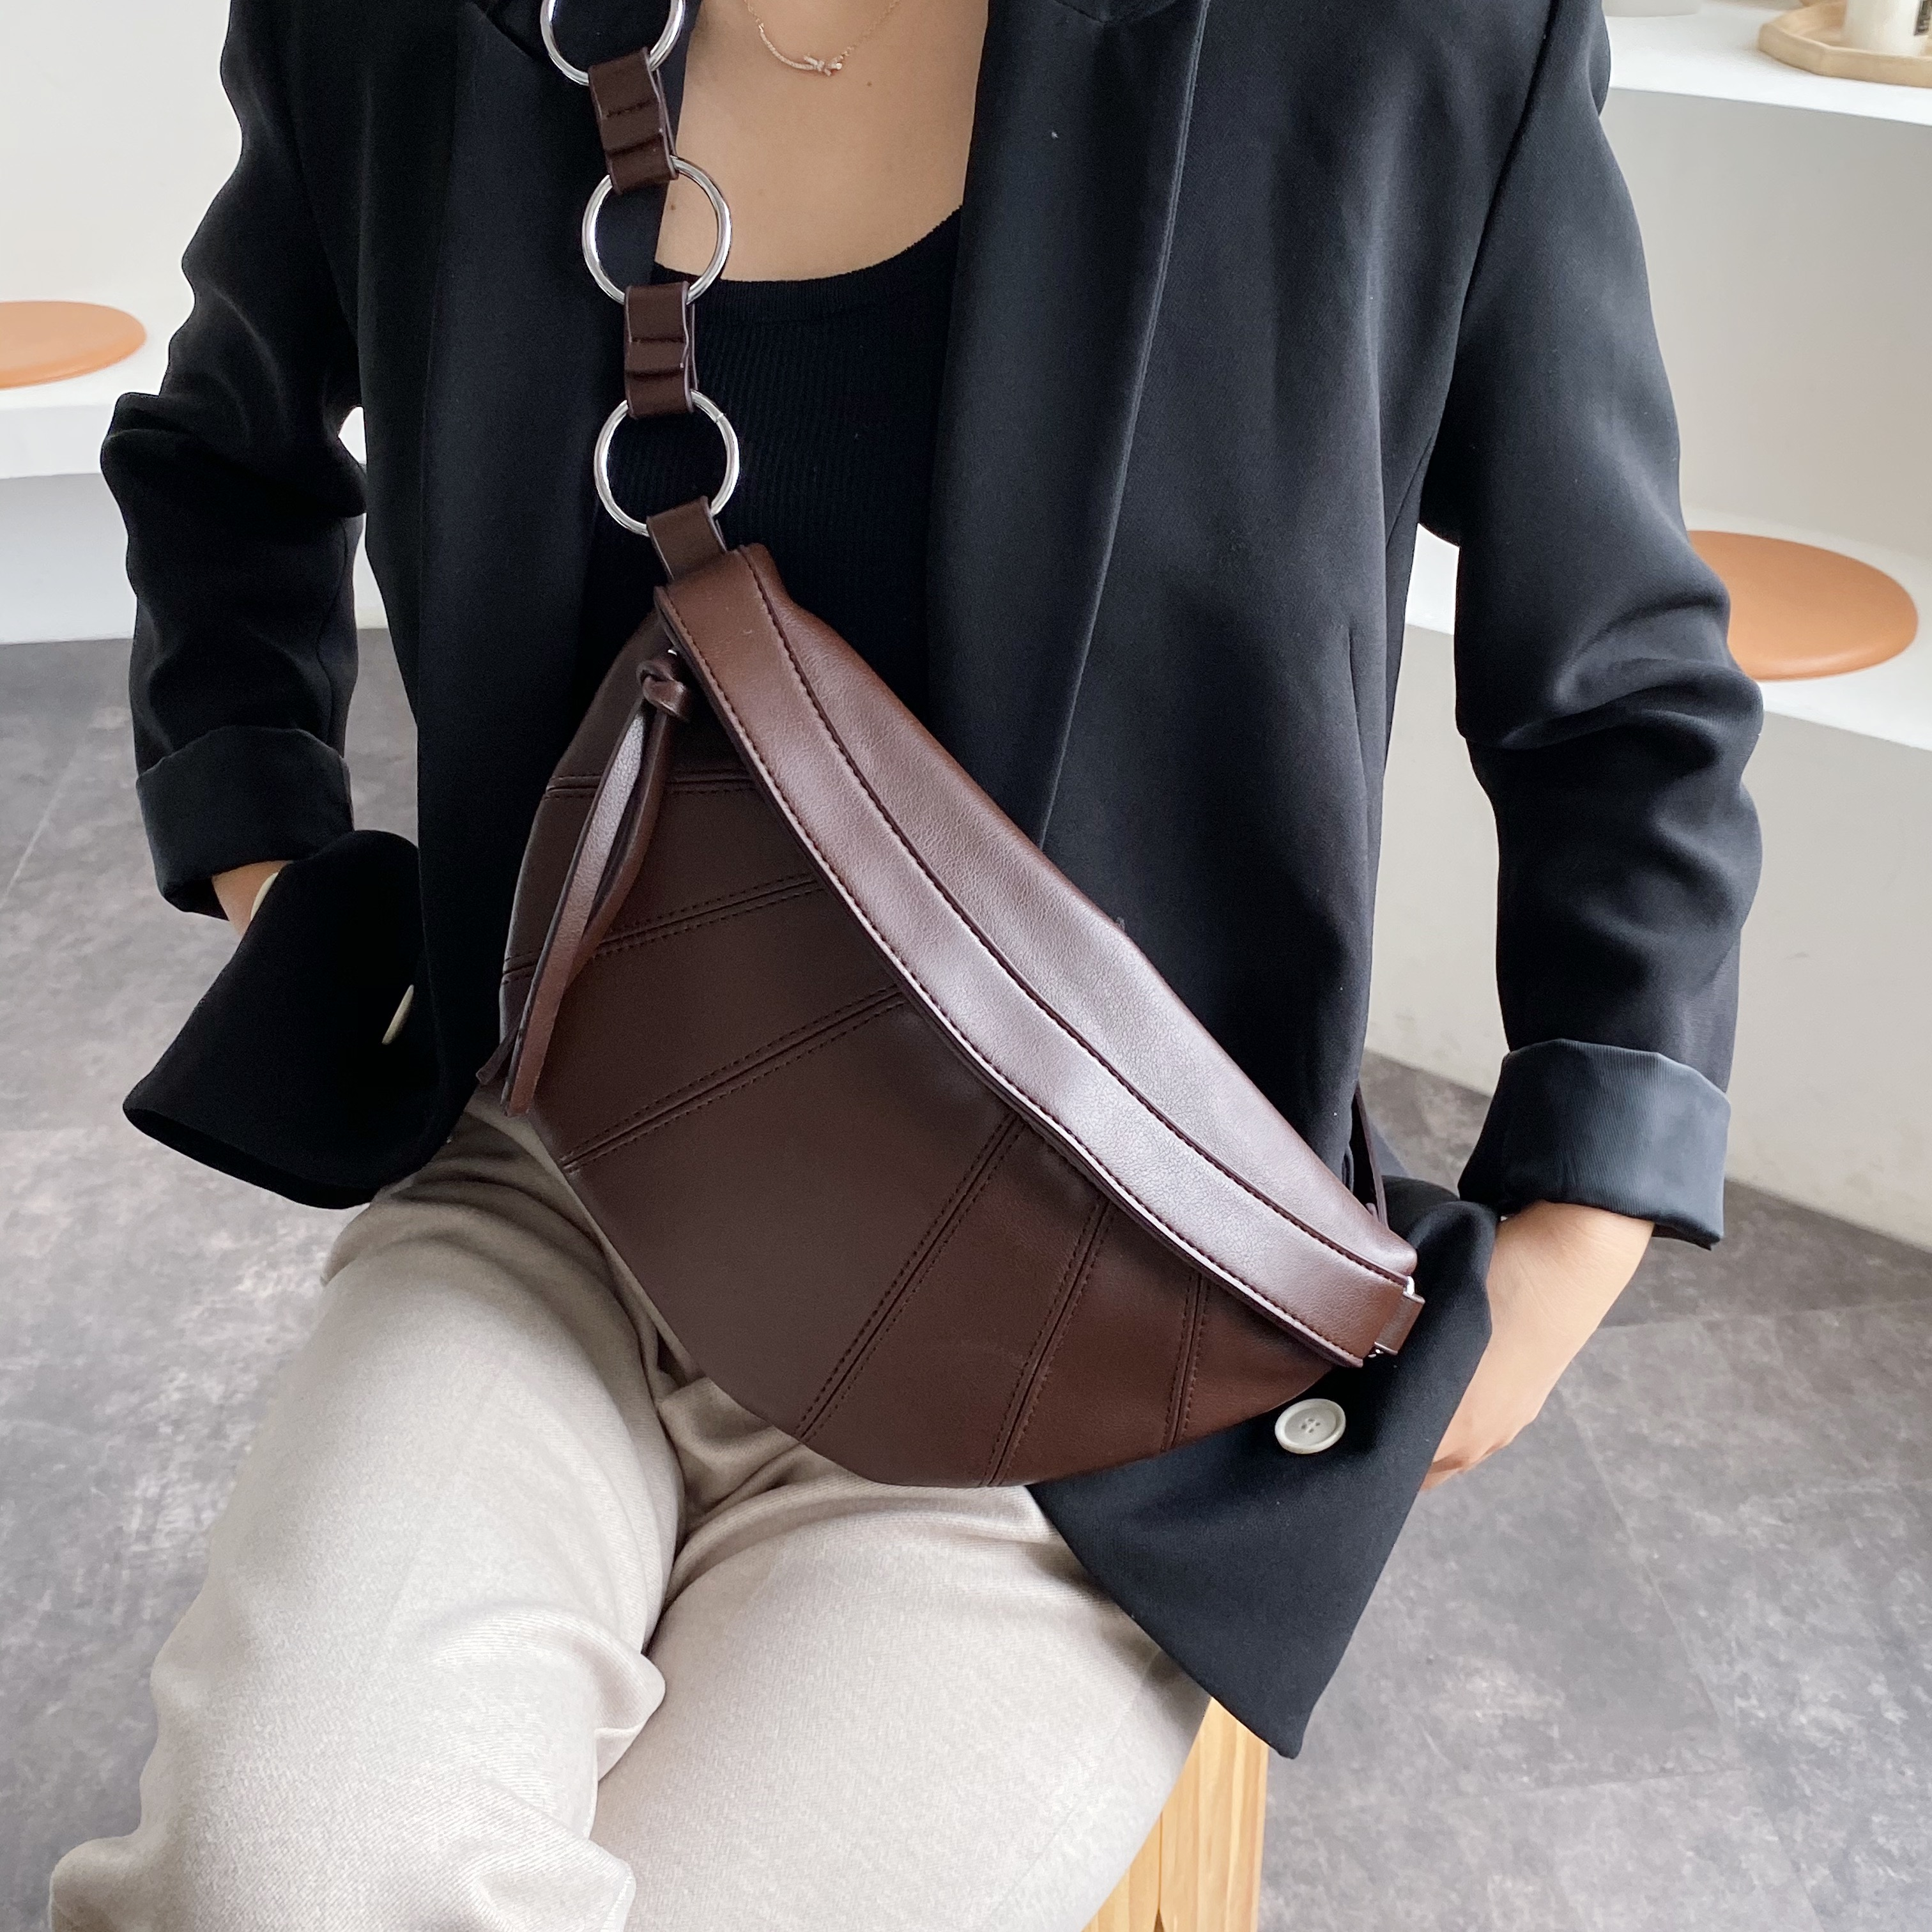 Vintage PU Leather Crossbody Bags For Women 2020 Small Solid Color Spliced Shoulder Messenger Bag Lady Chest Handbags